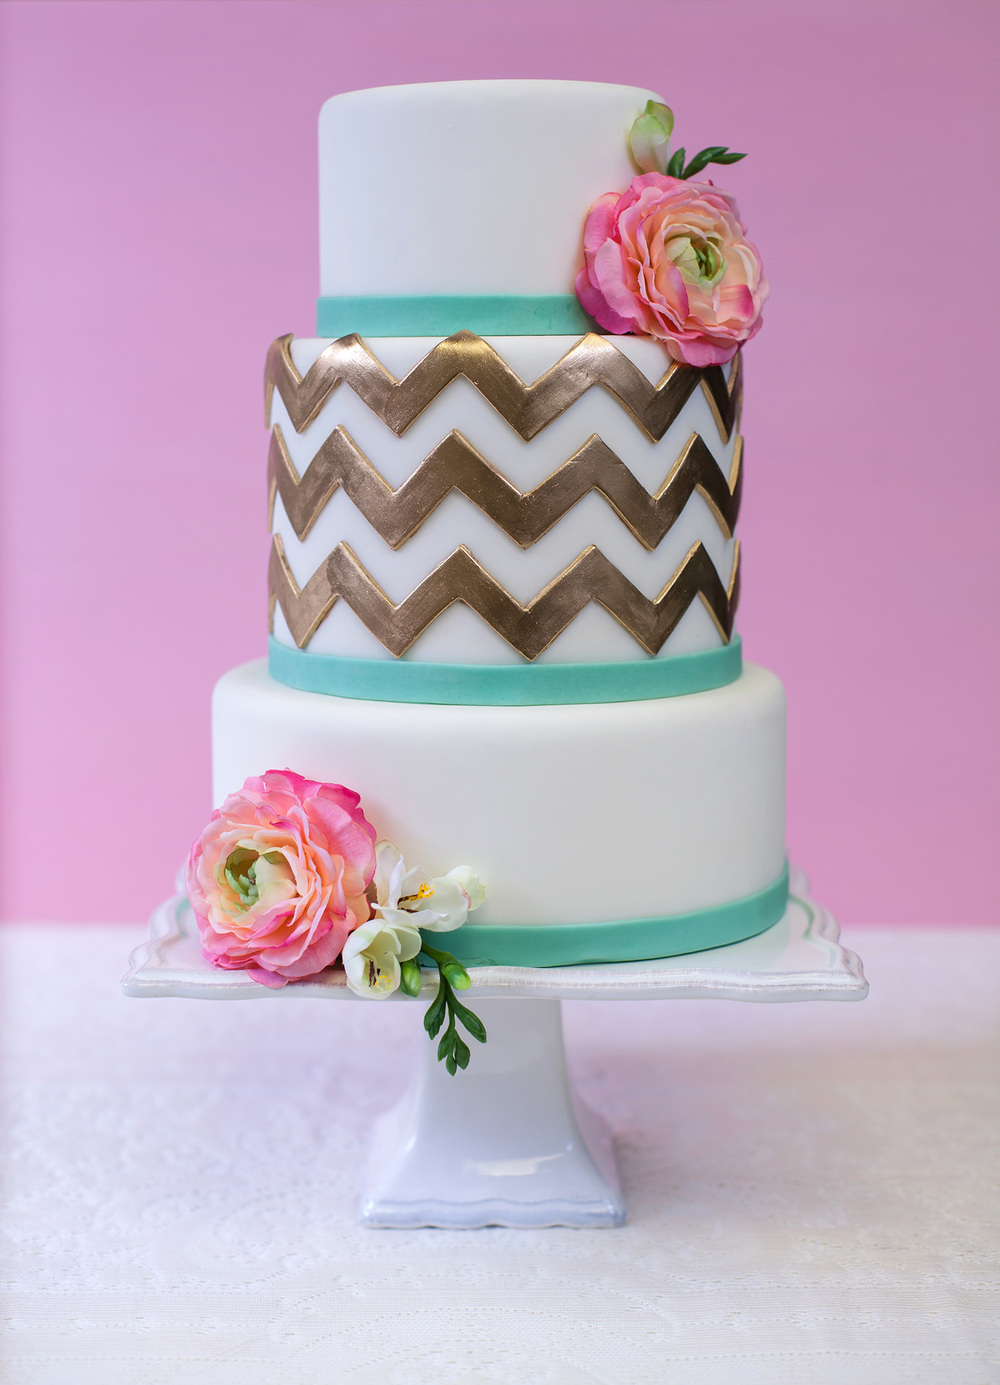 Wedding Cake from Couture Cakes in Daphne, Alabama